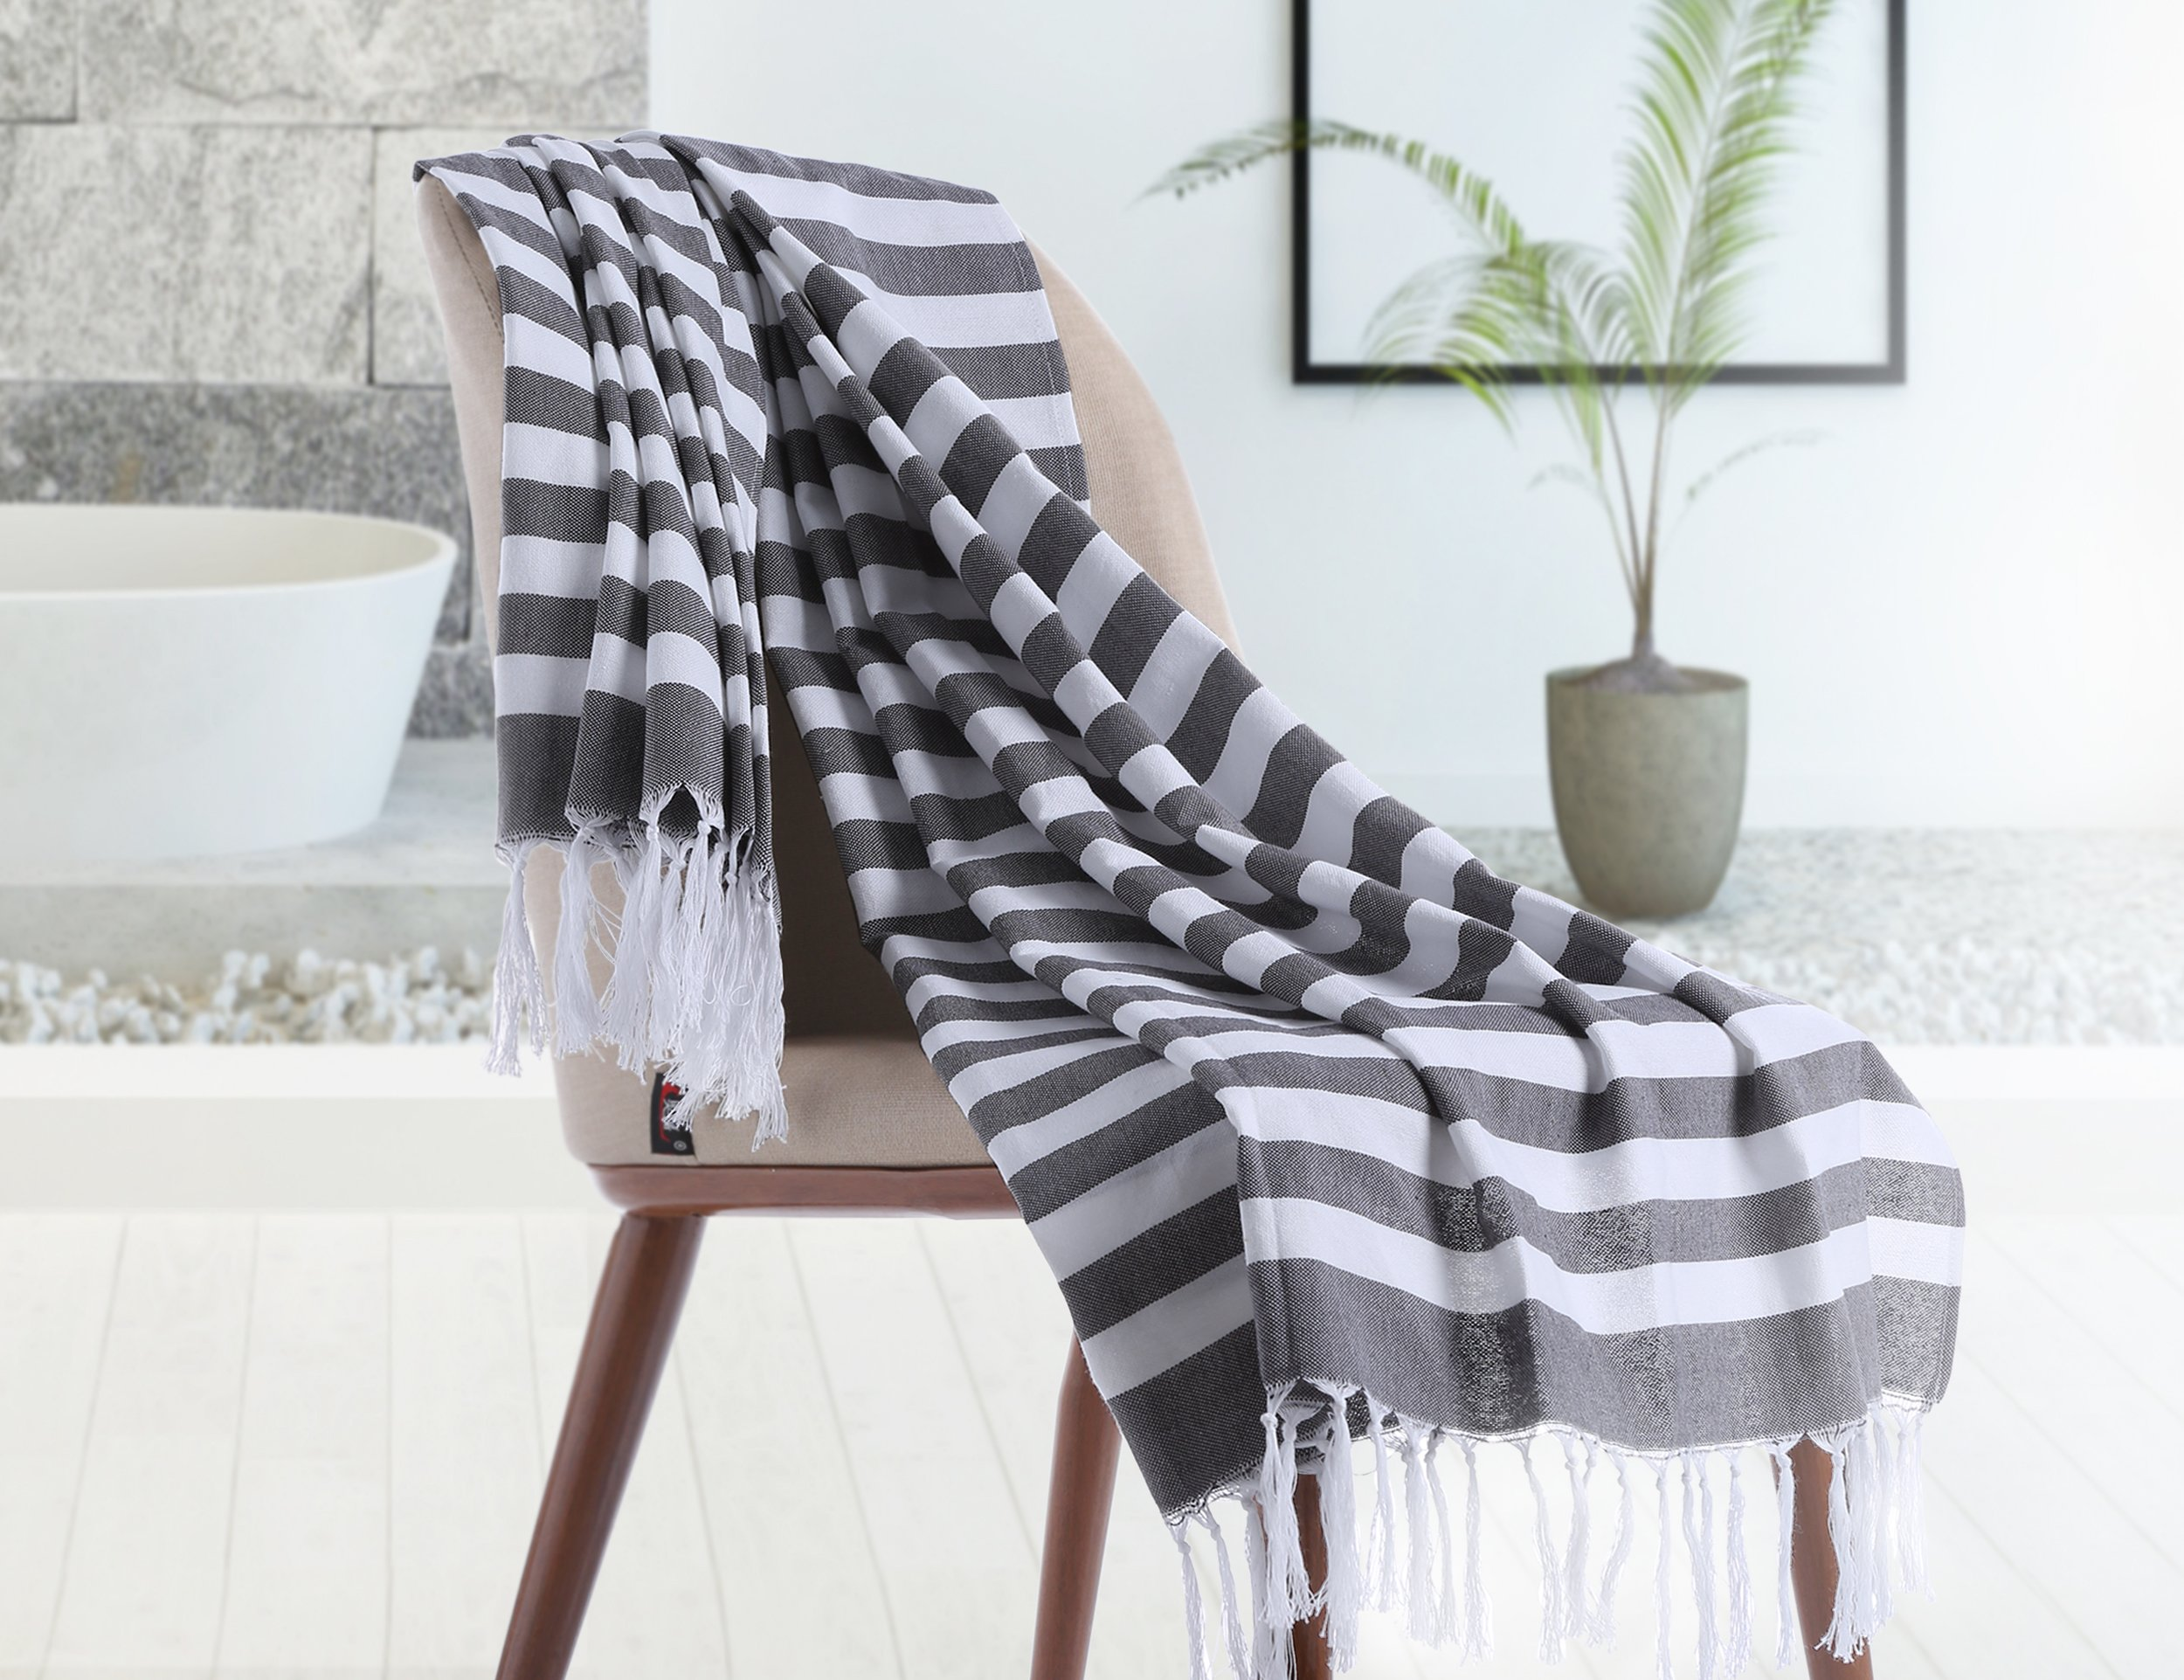 Chama 100% Cotton Extra Soft Striped Peshtemal Fouta Turkish Beach Towels Wrap Bath Towel Oversized Blanket for Baby Home Family Traveling Pool Scarf Towel Absorbency (Black&white stripes) by Chama (Image #3)